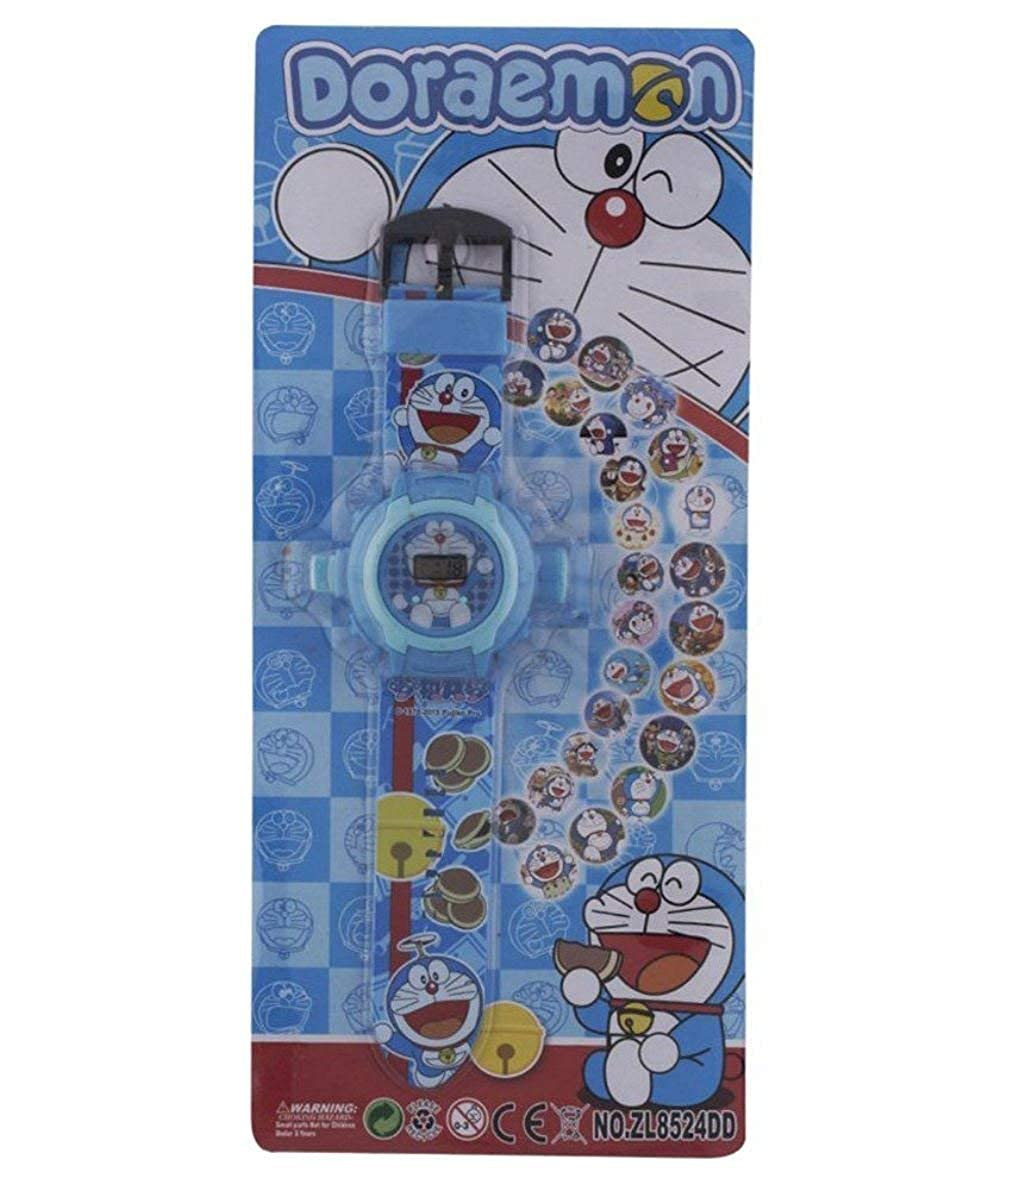 Nexxa Doraemon Images Reloj de Pulsera Digital para niños: Amazon ...